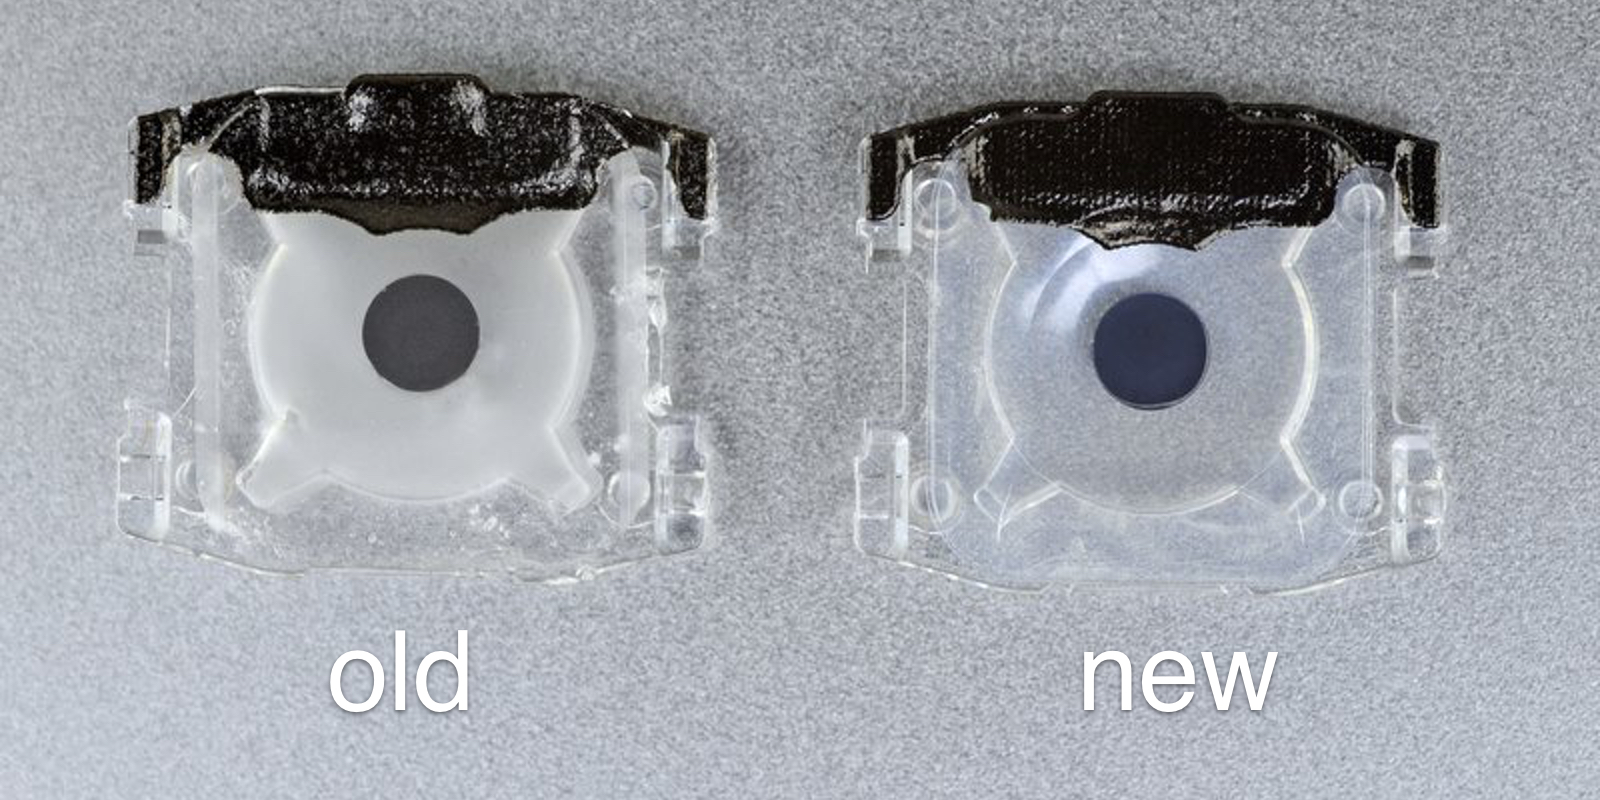 iFixit: 2019 MacBook Pro butterfly keyboard changes include new membrane covers and tweaked dome switch